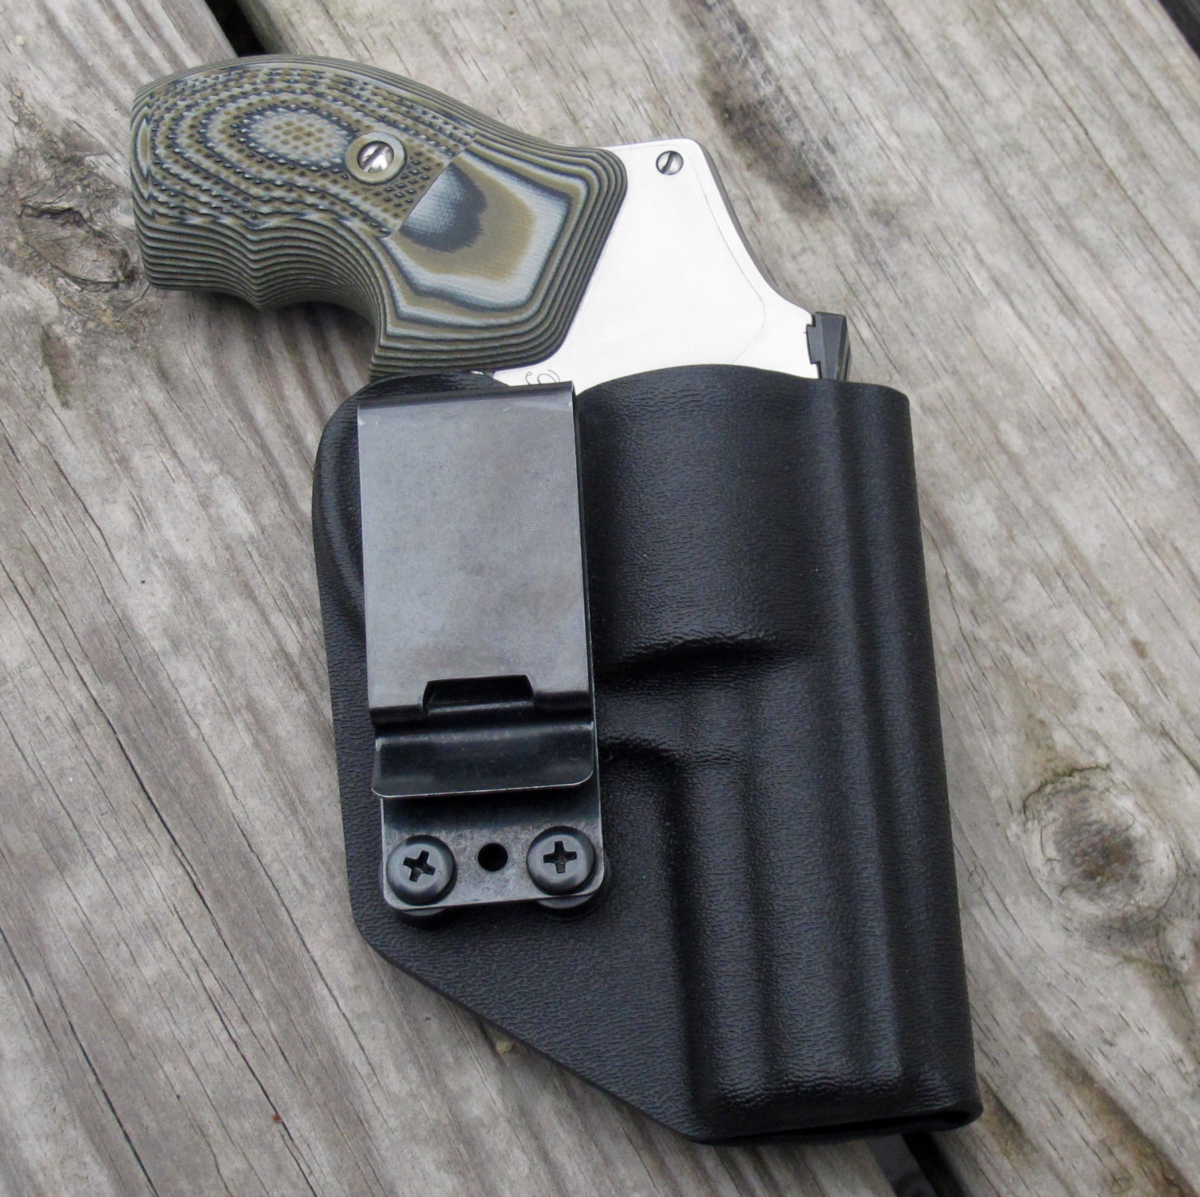 Dark Star Gear J-Frame AIWB Holster Review